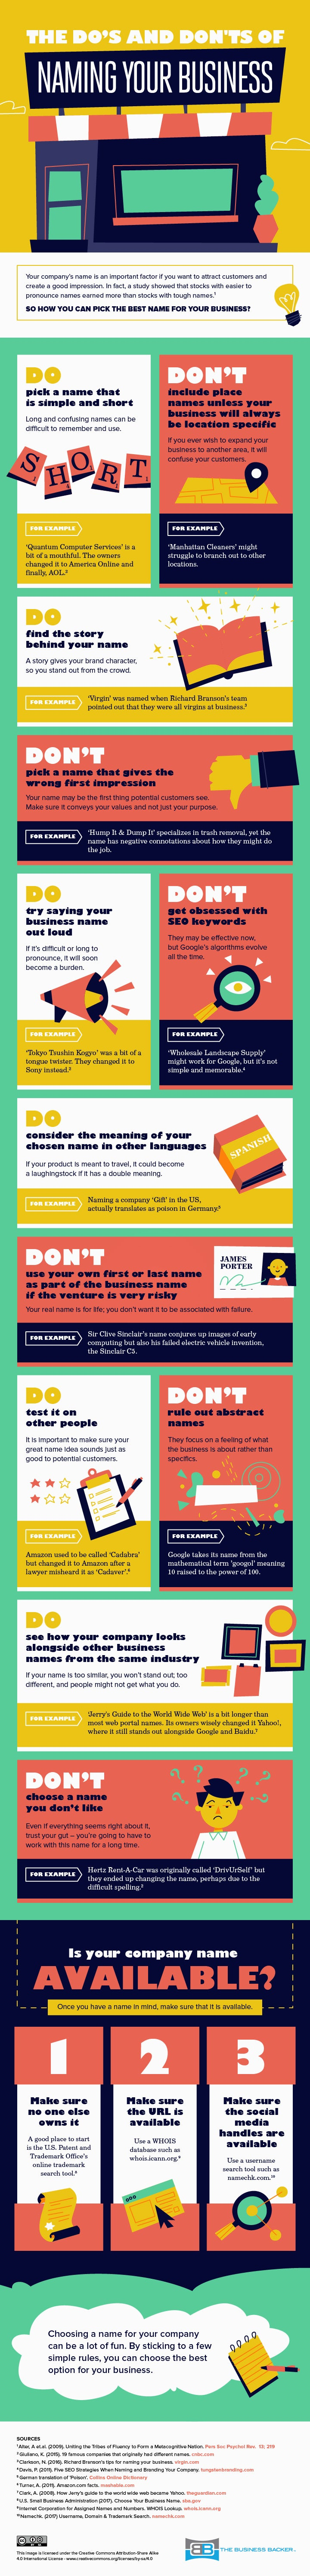 The Do's and Don'ts of Naming Your Business (Infographic)